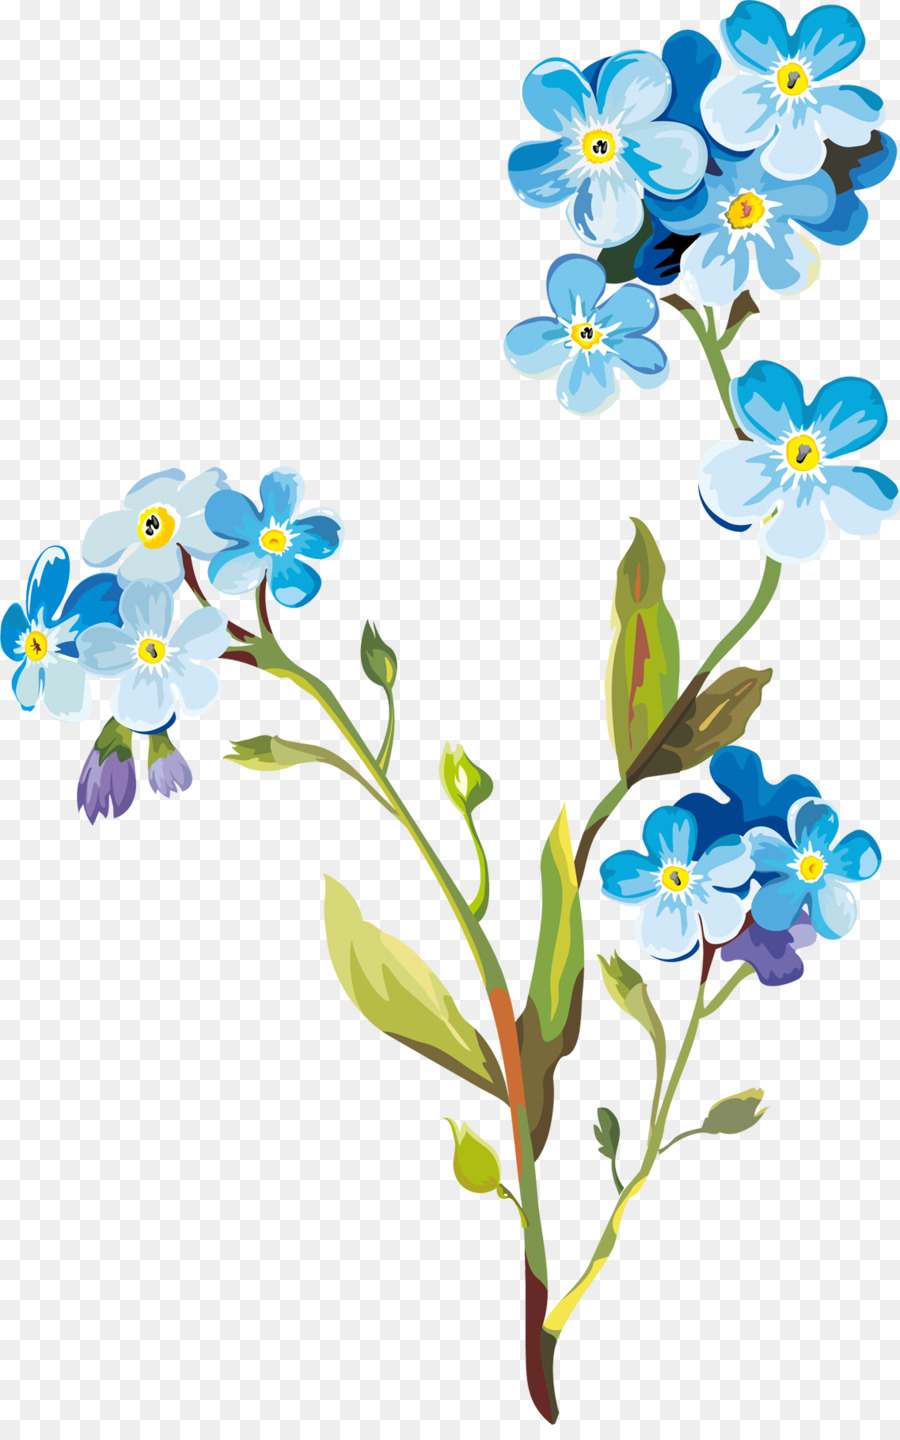 Flower Drawing Clip Art Spring Flowers Png Download 1137 1800